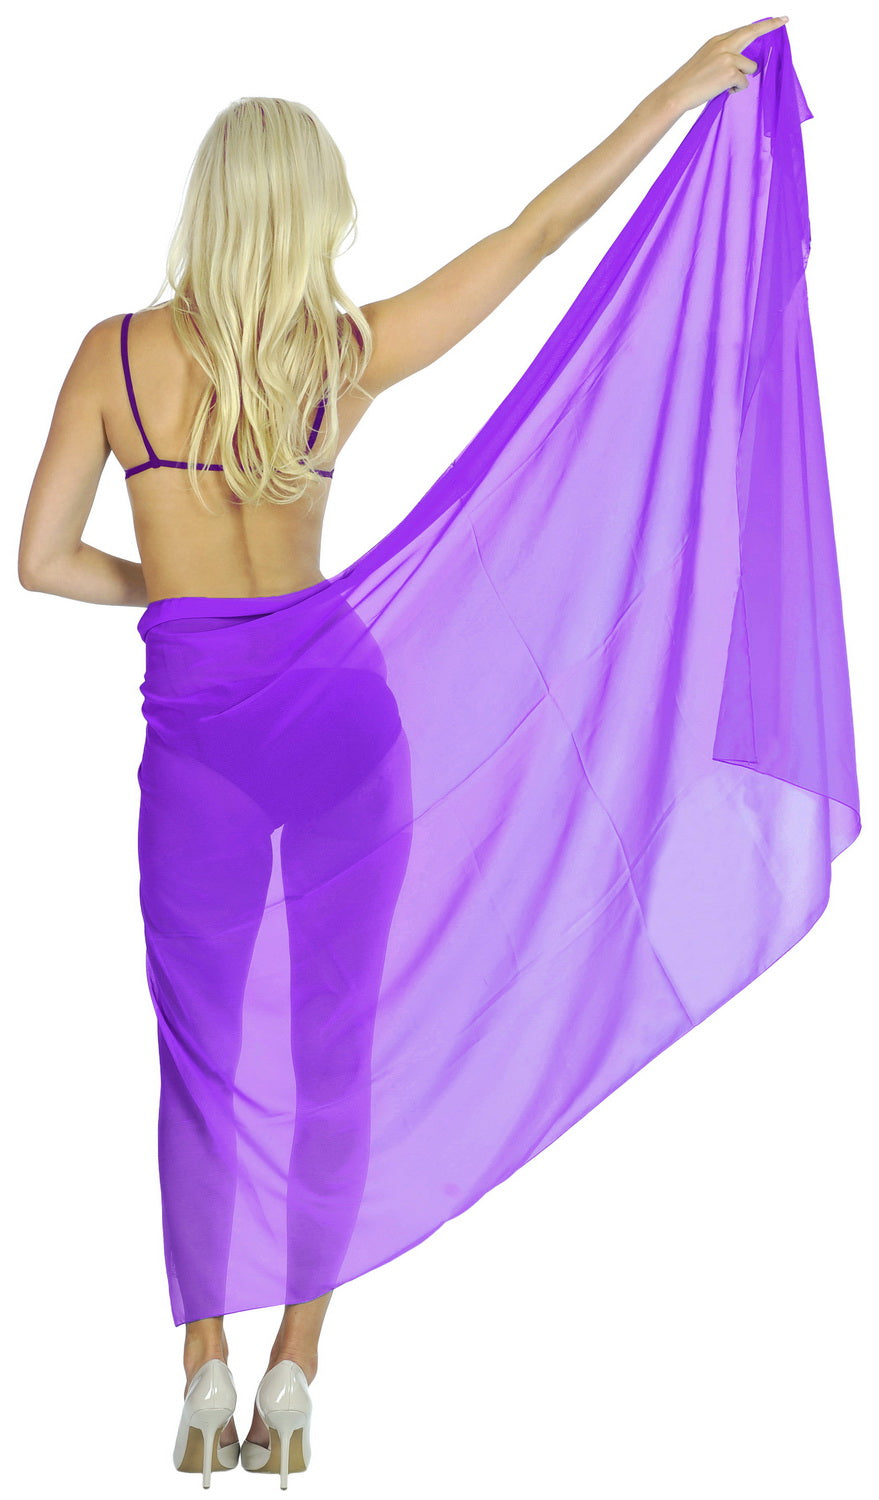 la-leela-sheer-chiffon-women-wrap-beach-sarong-solid-swimsuit-wrap-skirts-full-long-Violet_T245